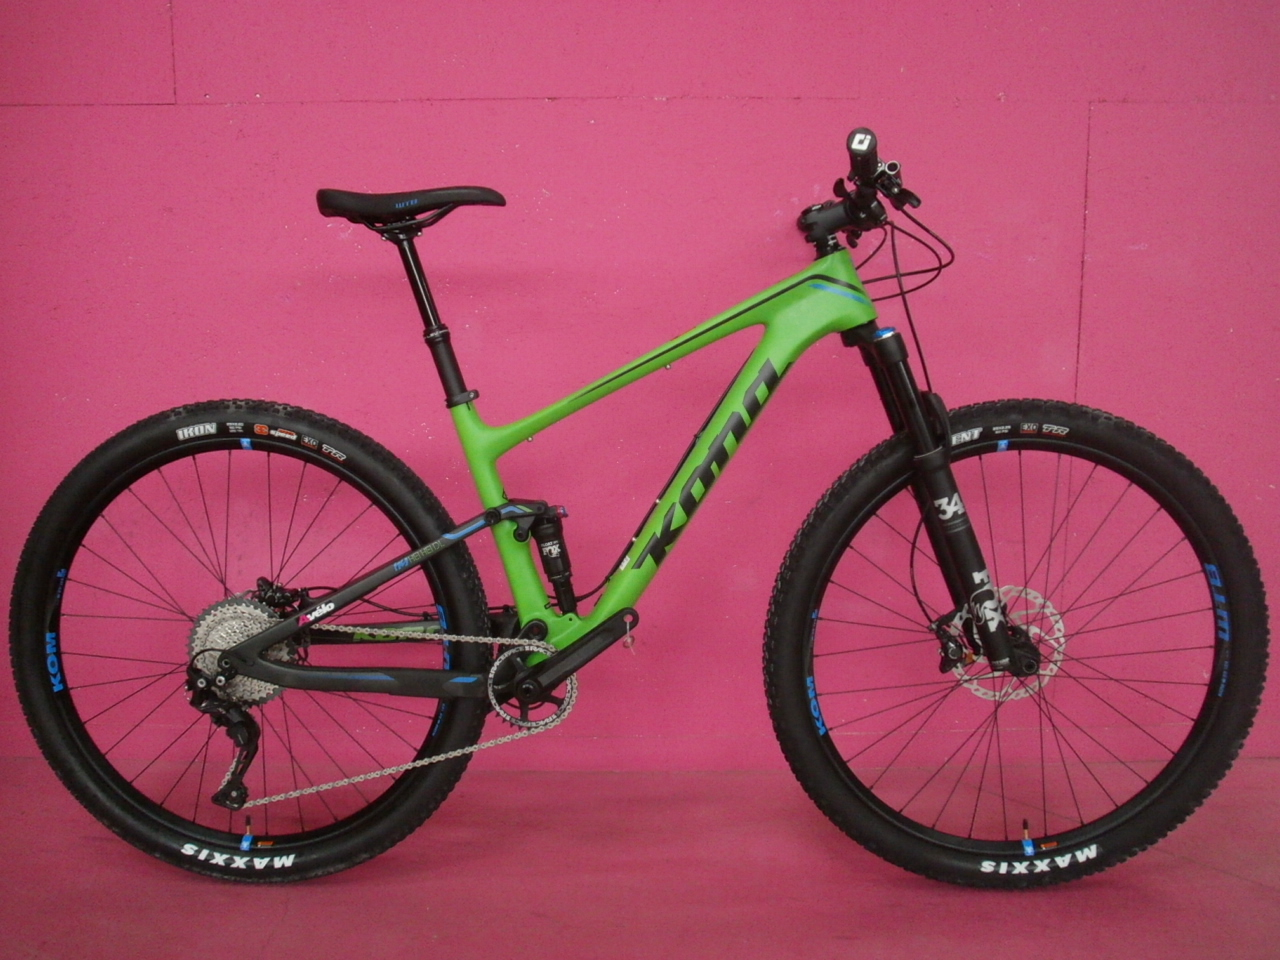 2017 KONA HEIHEI DL TRAIL CARBONE 29